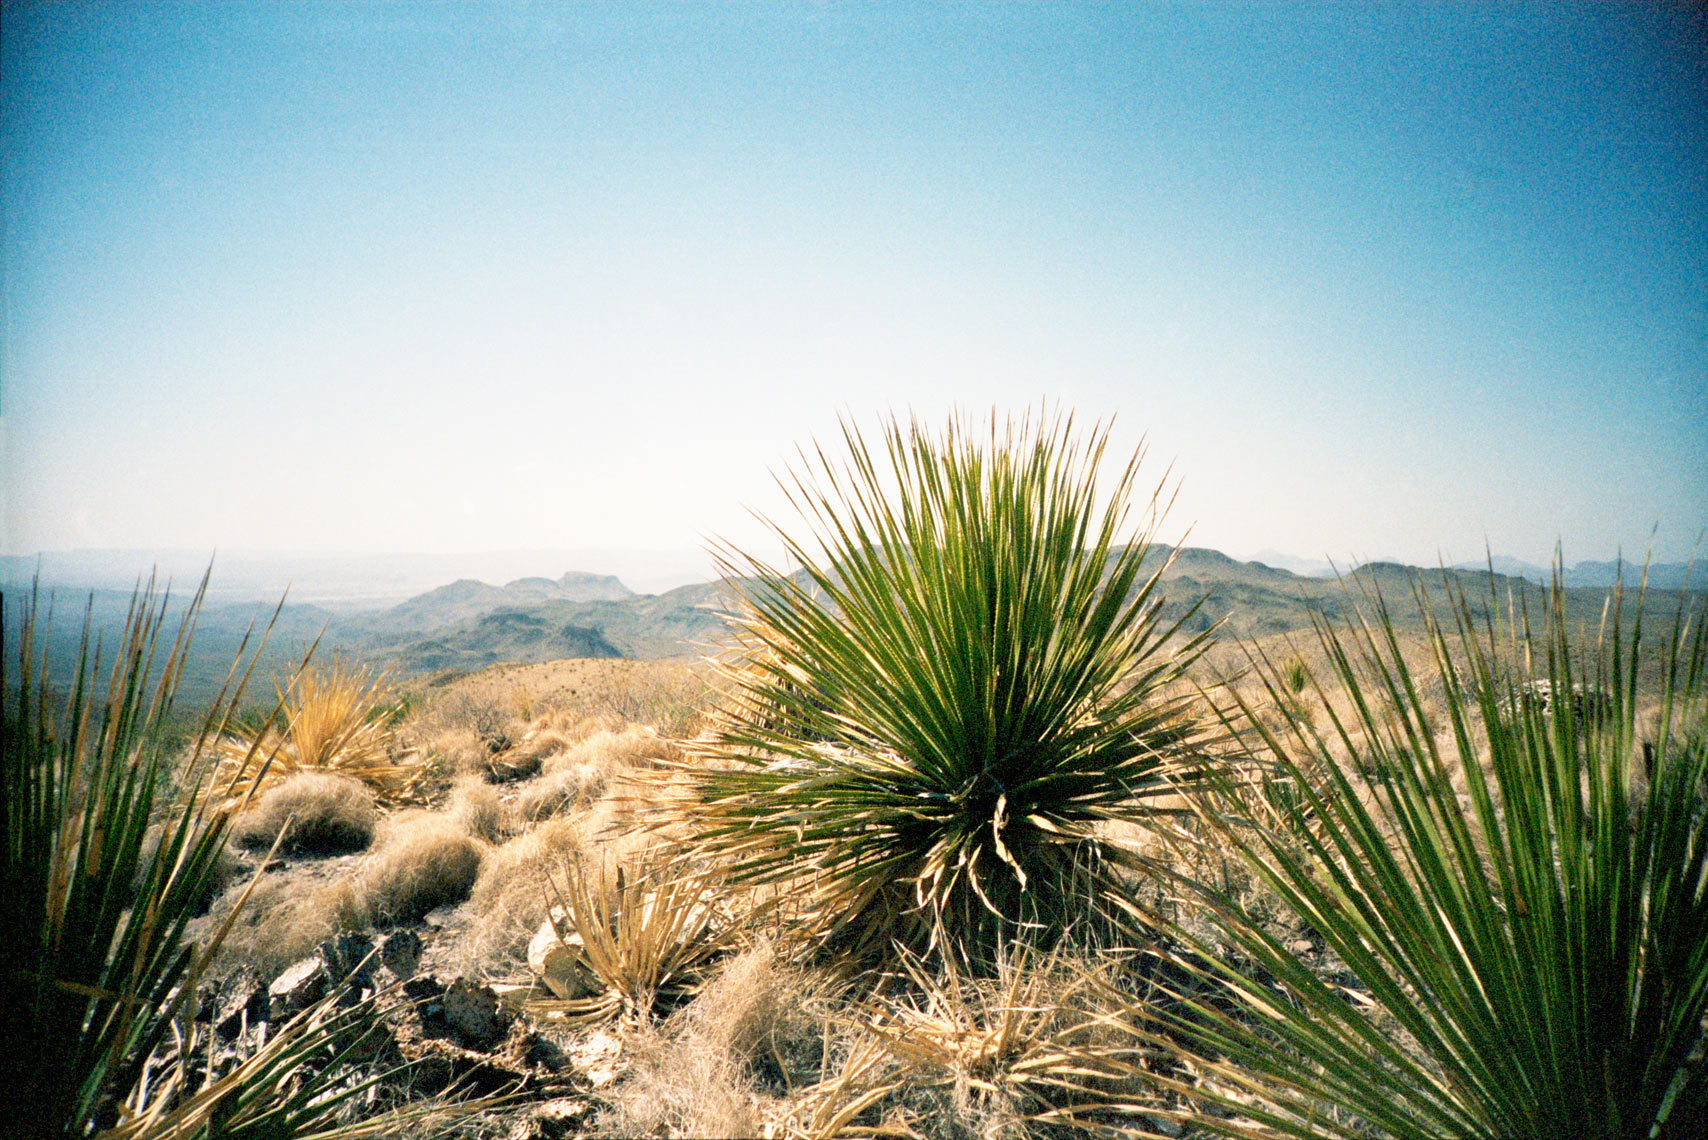 cactus in Big Bend National Park, Texas